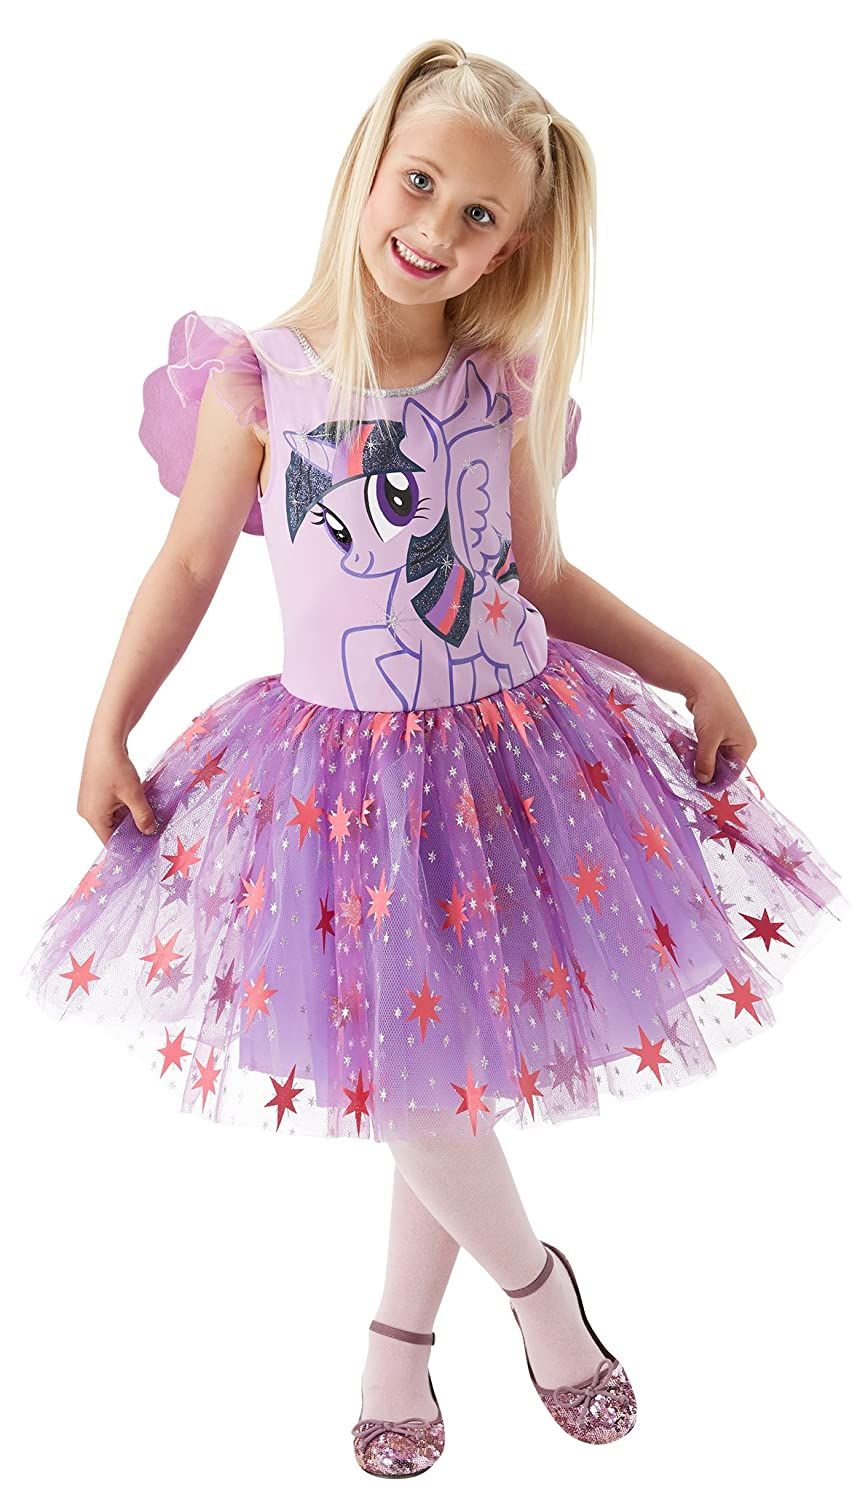 Amazon.com: My Little Pony Twilight Sparkle Deluxe Fancy Dress Costume: Clothing